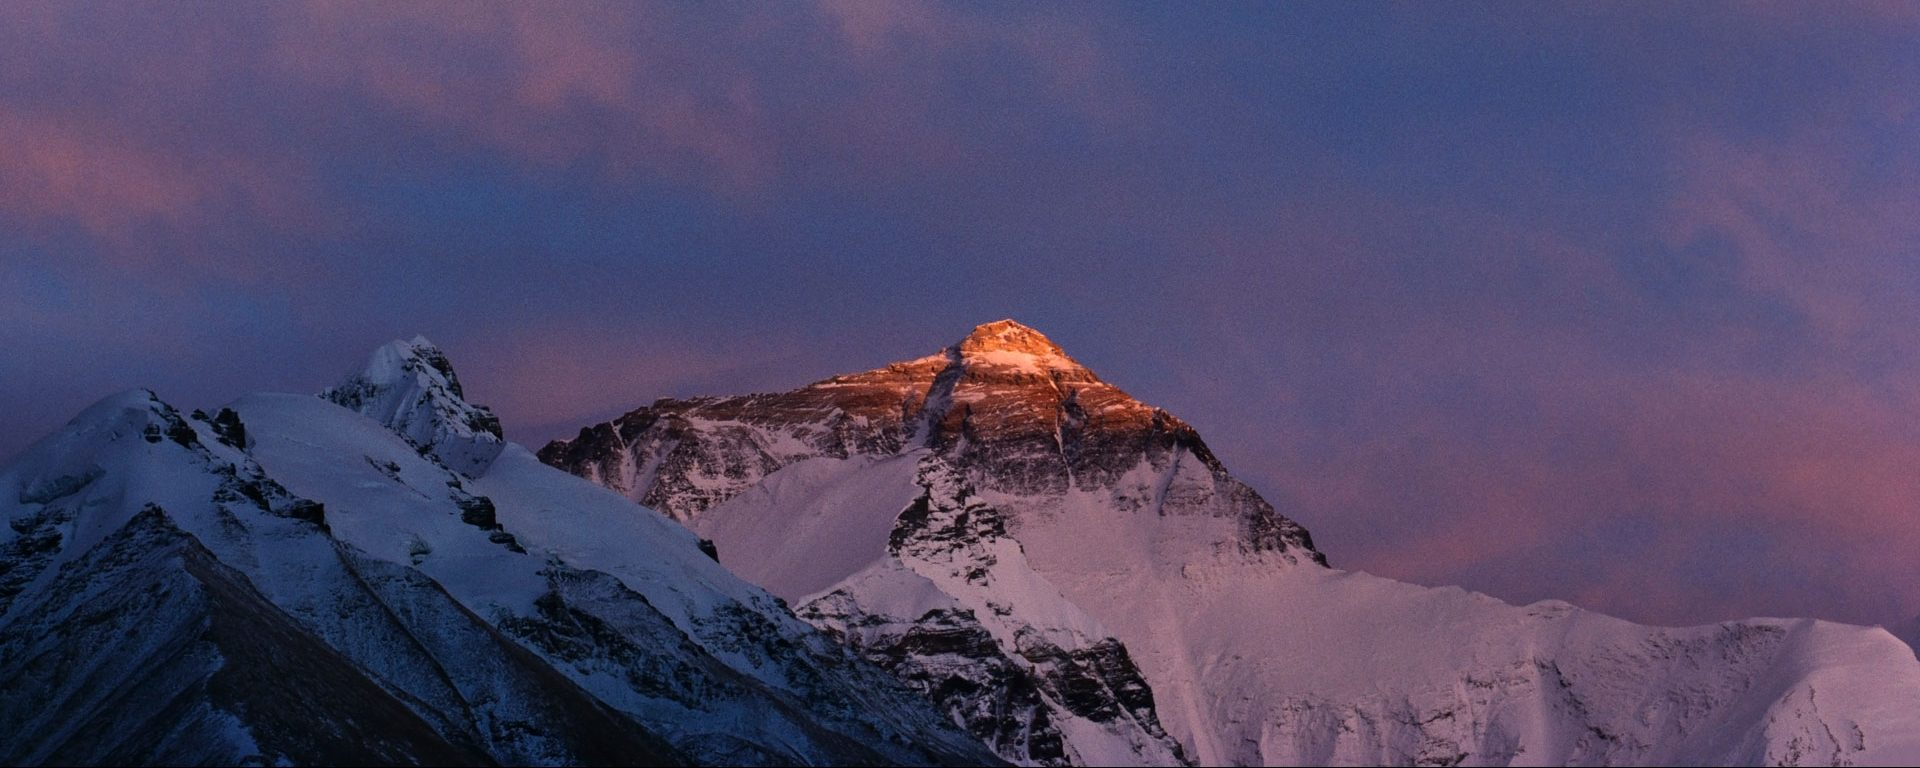 Mt. Everest with a purple sky behind, Tibet, China